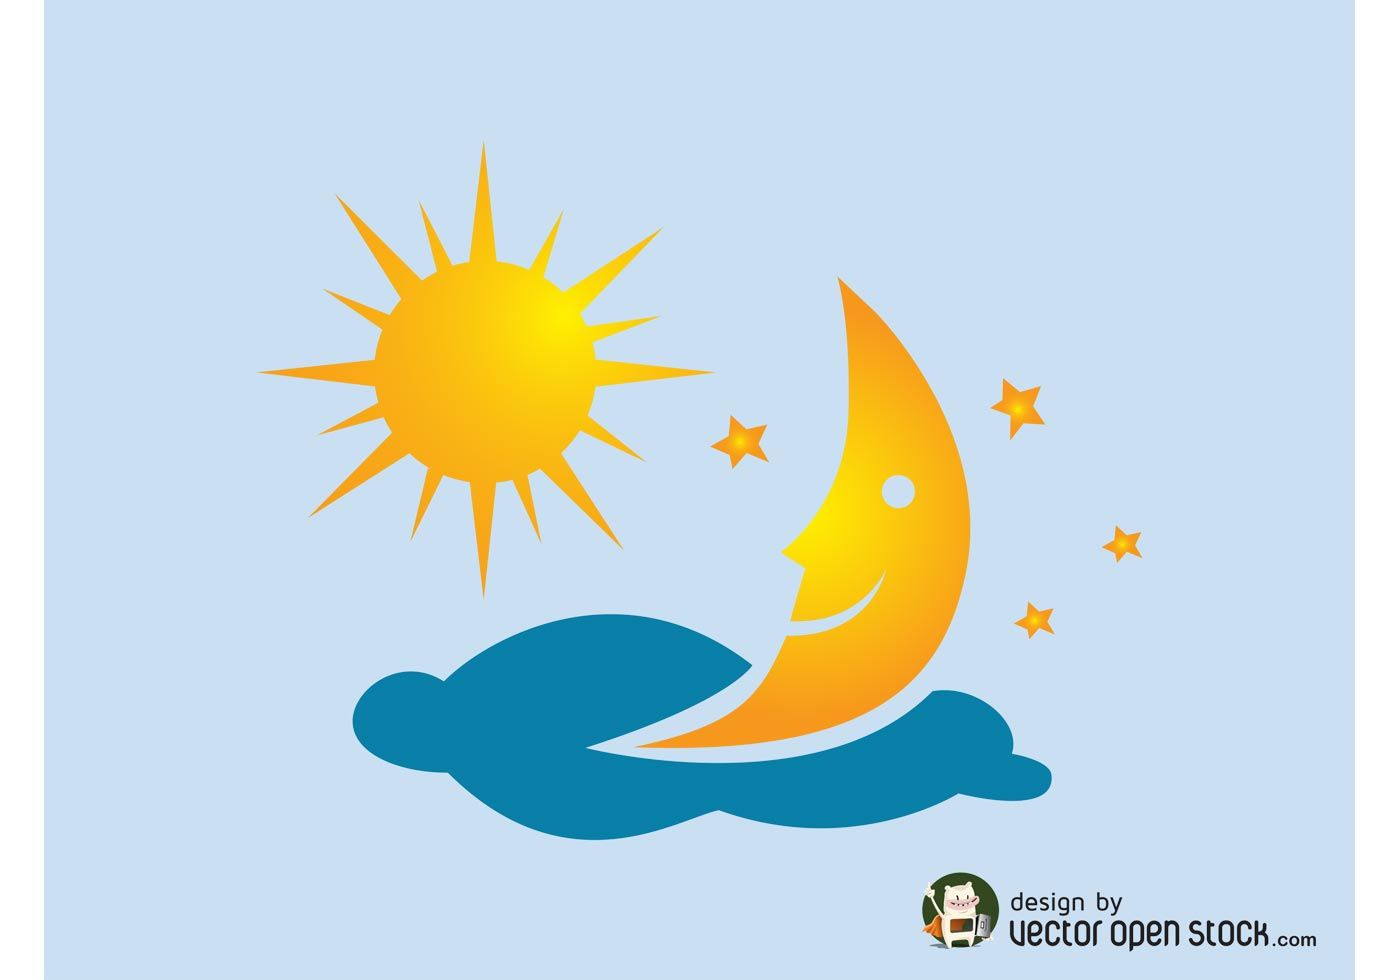 sun and moon vector strike off pinterest moon free vector art rh pinterest com Sunset Vector Sun and Moon Together